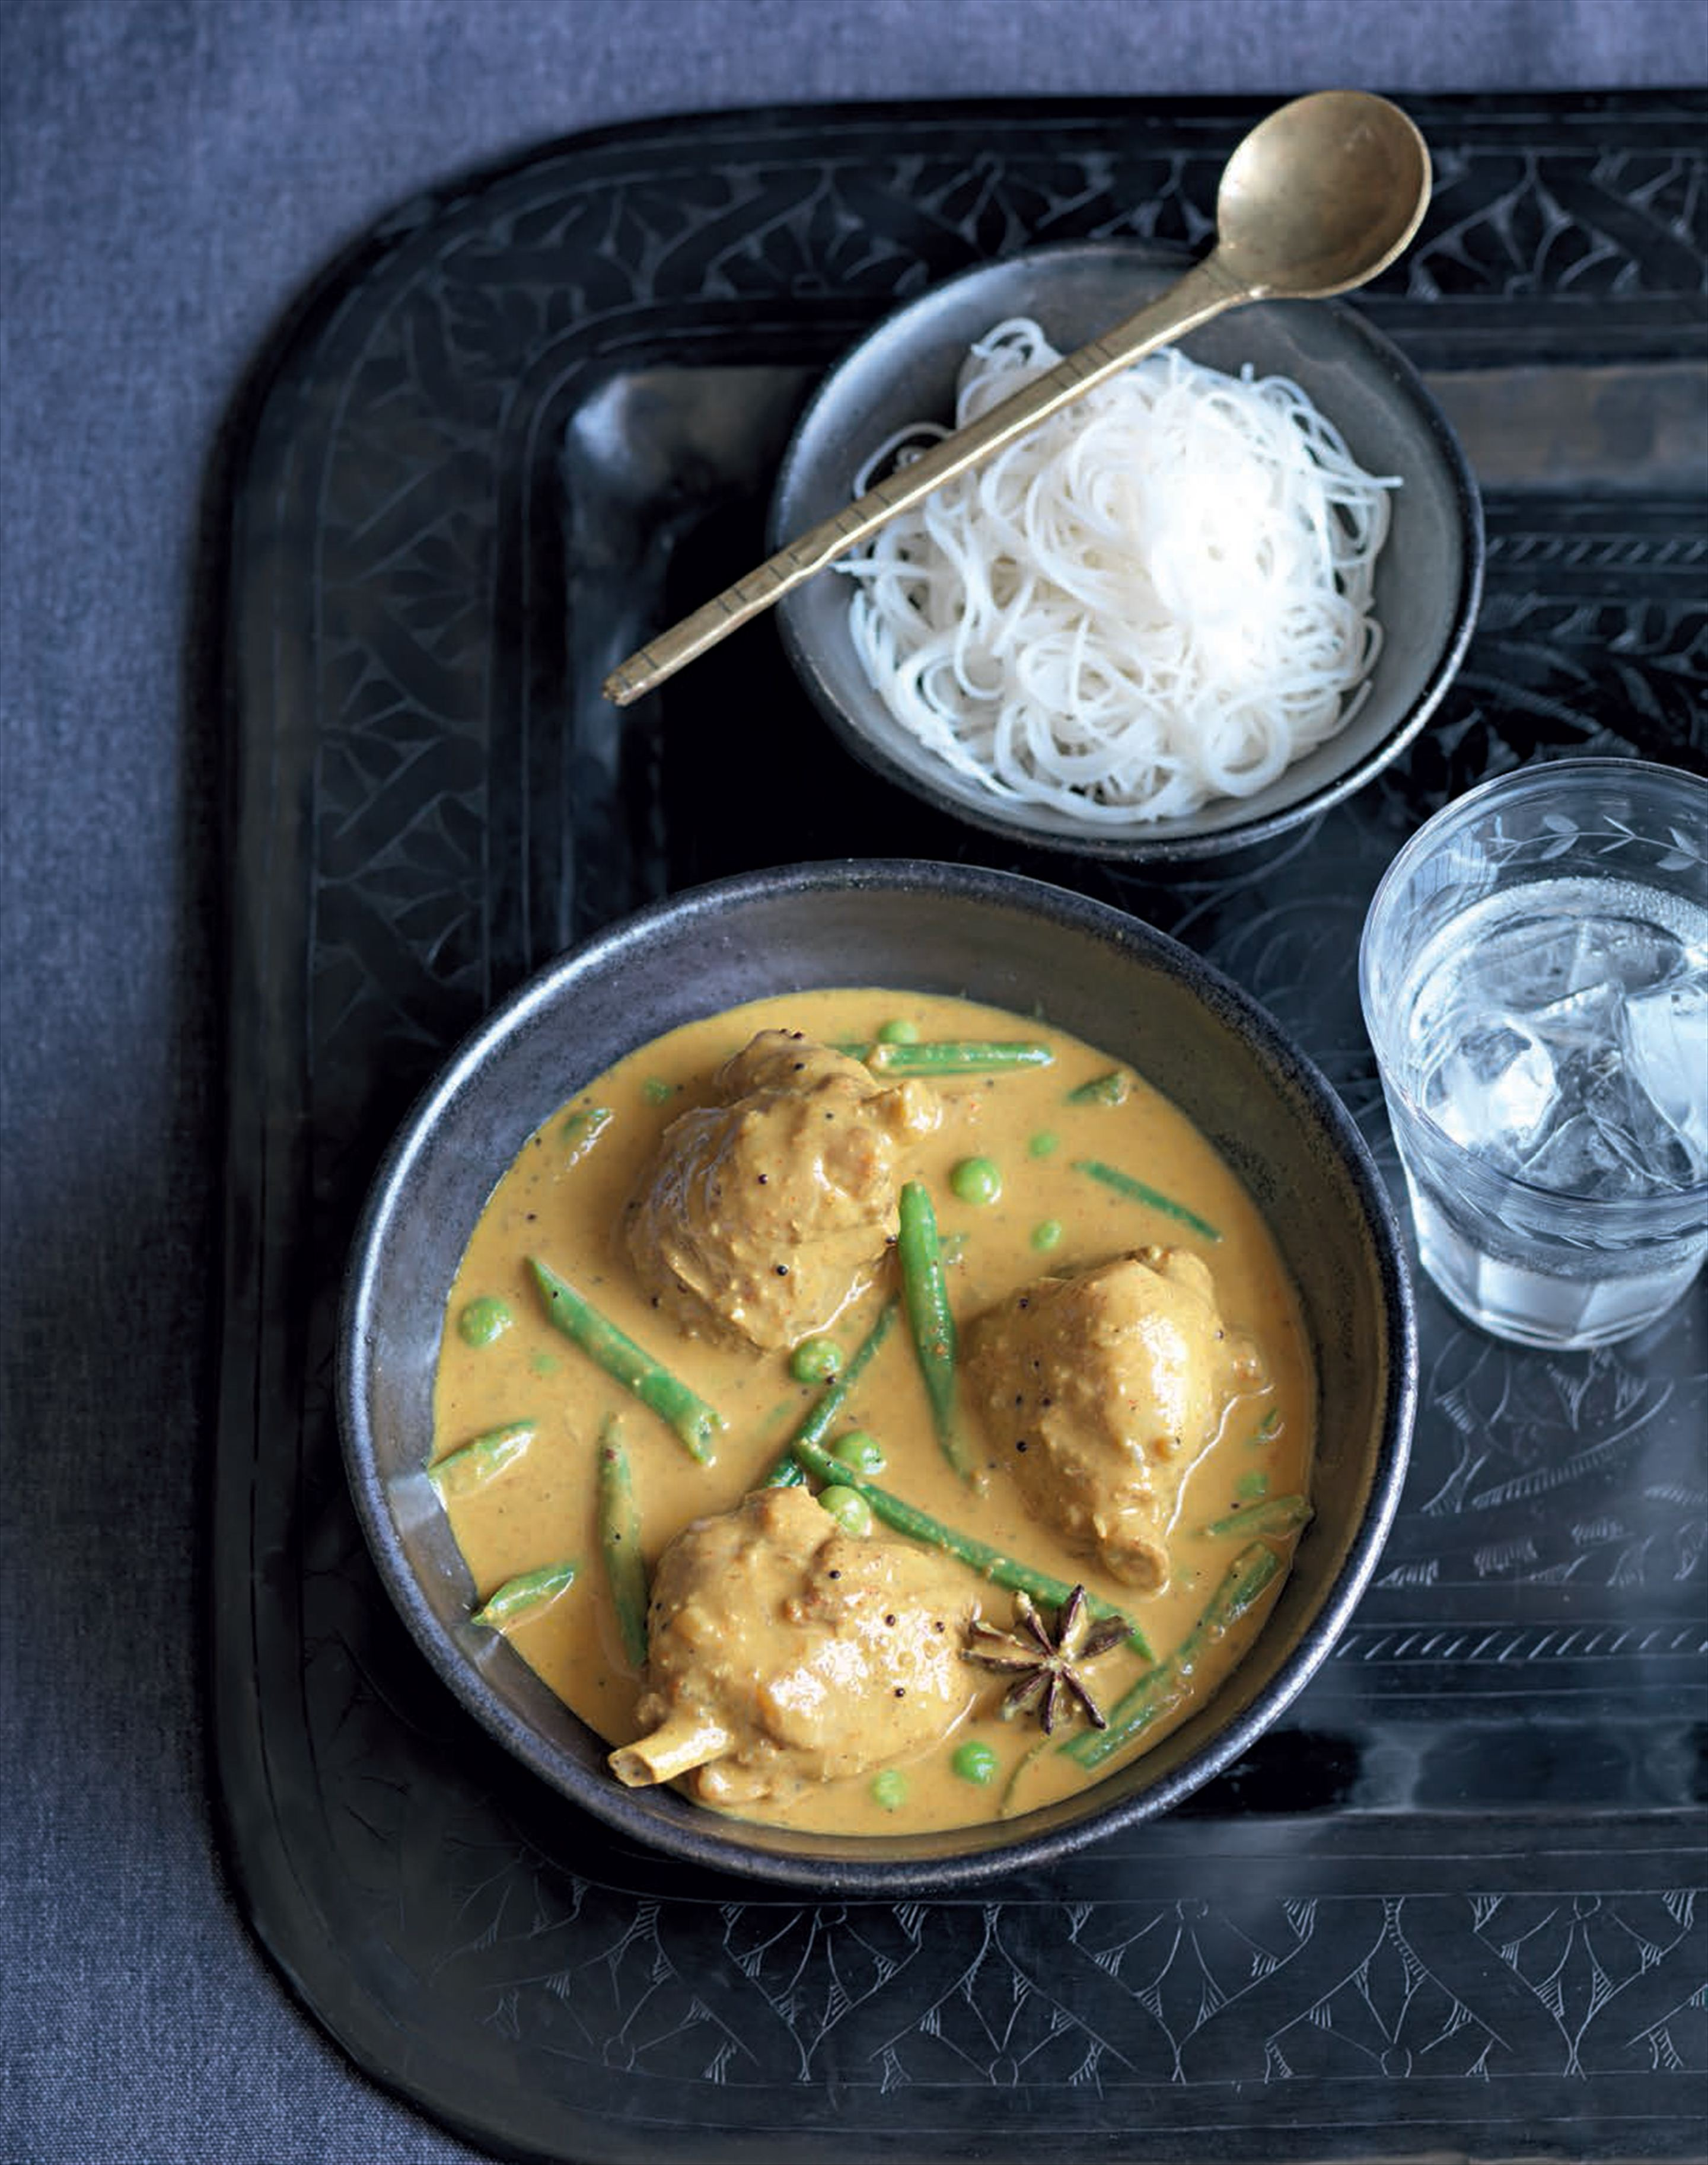 Chicken and vegetables in an aromatic coconut sauce